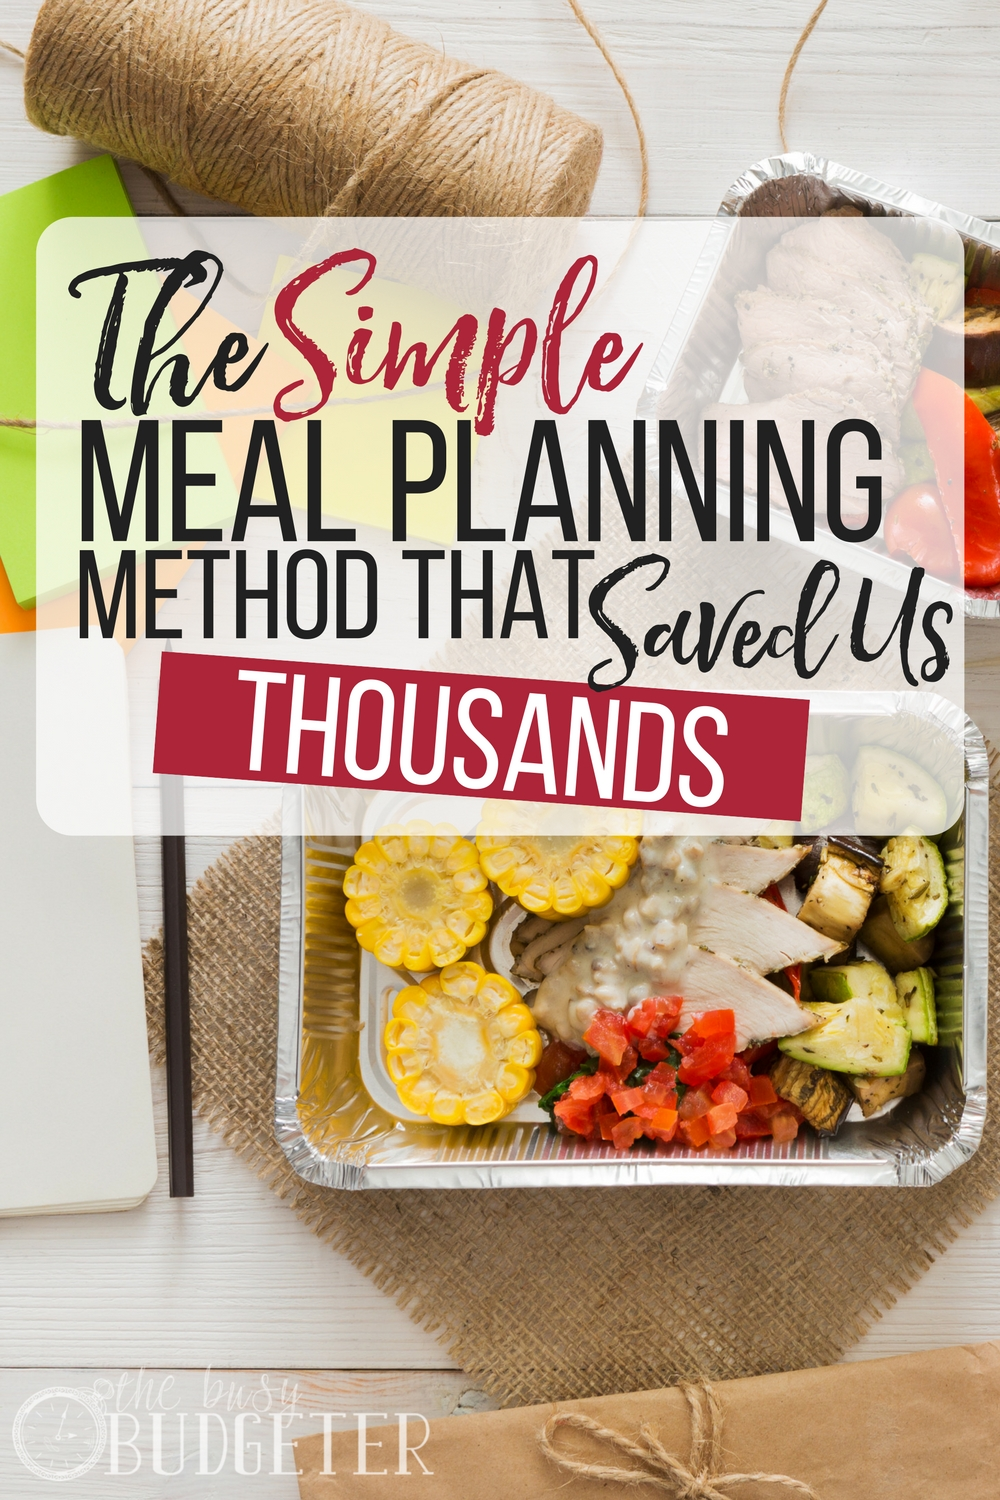 The simple meal planning method that saved us thousands. Finally, someone talks you through the process for simple meal planning. This is something that does not come naturally to me and it's so easy to just grab a pizza. I really want my family to have better healthier meals!